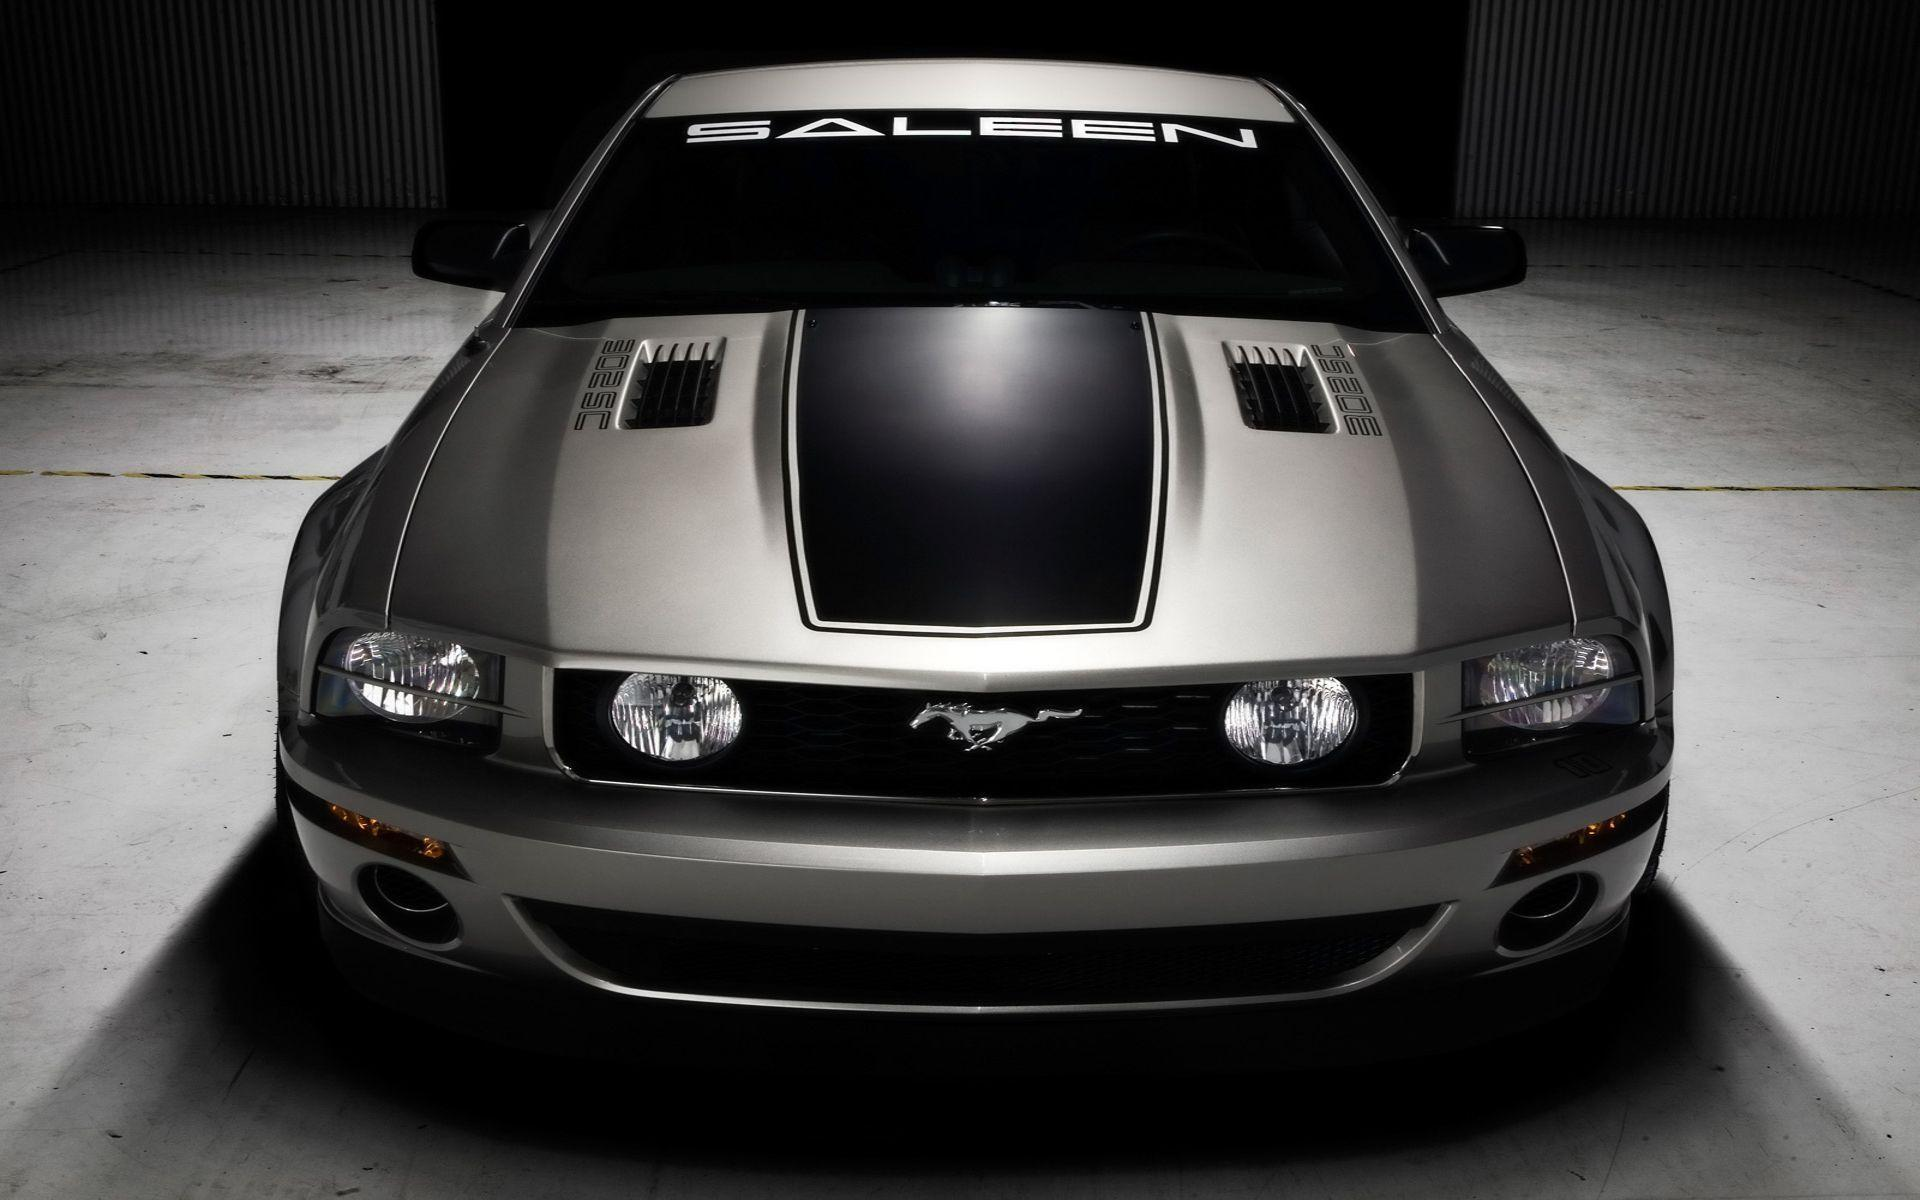 Ford Mustang Wallpaper.jpg free picture